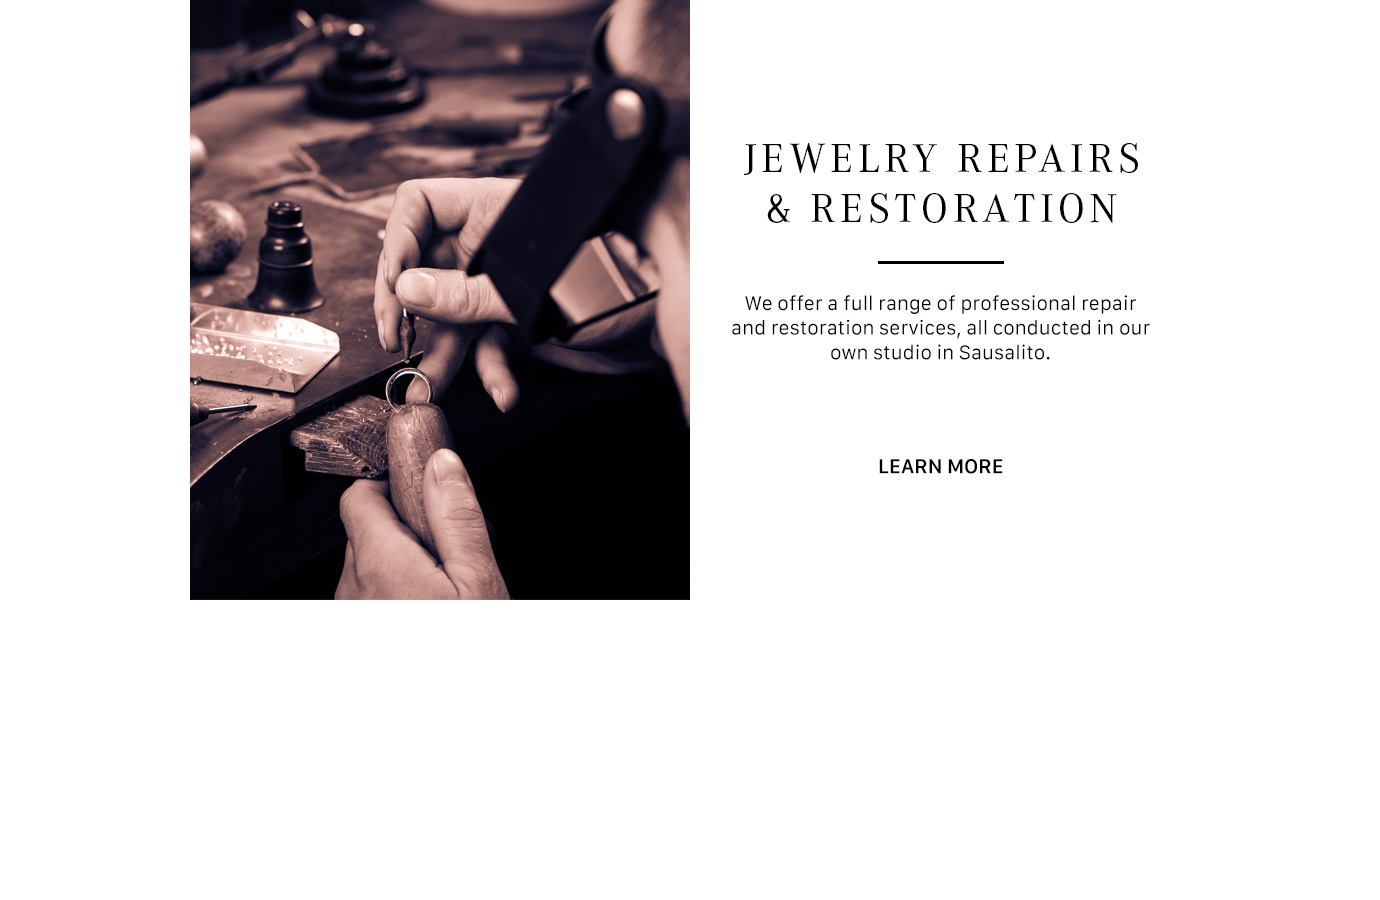 Professional Jewelry Repair Sausalito -